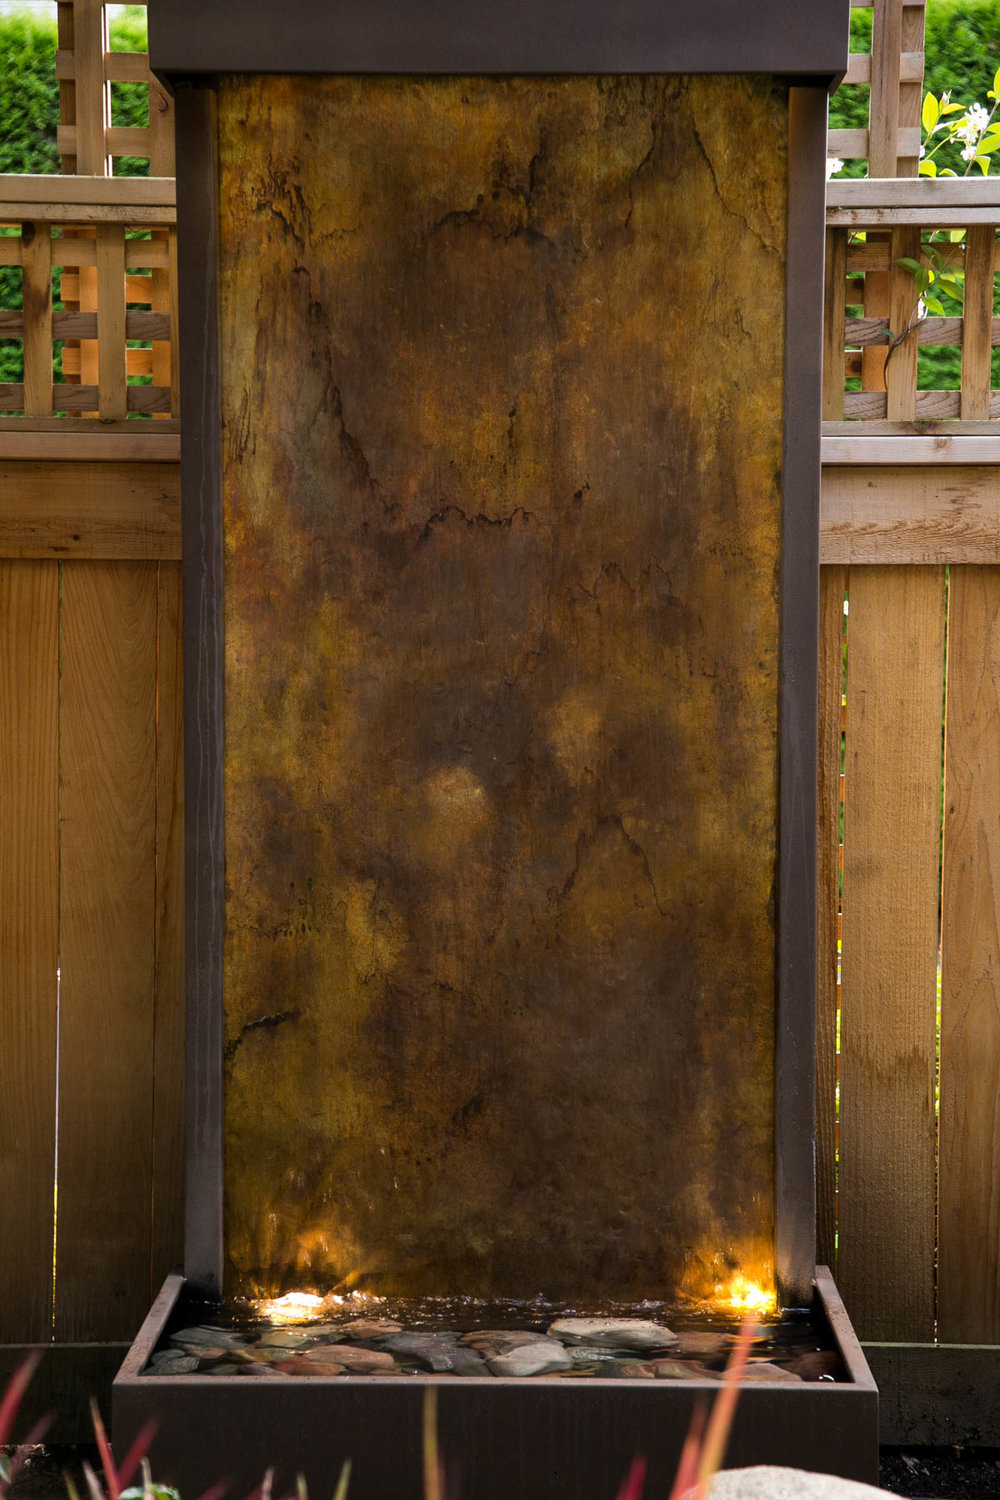 Vertical water feature with a hammered brass panel and custom patina.  Up and down lighting added for a spectacular focal point in the evenings.